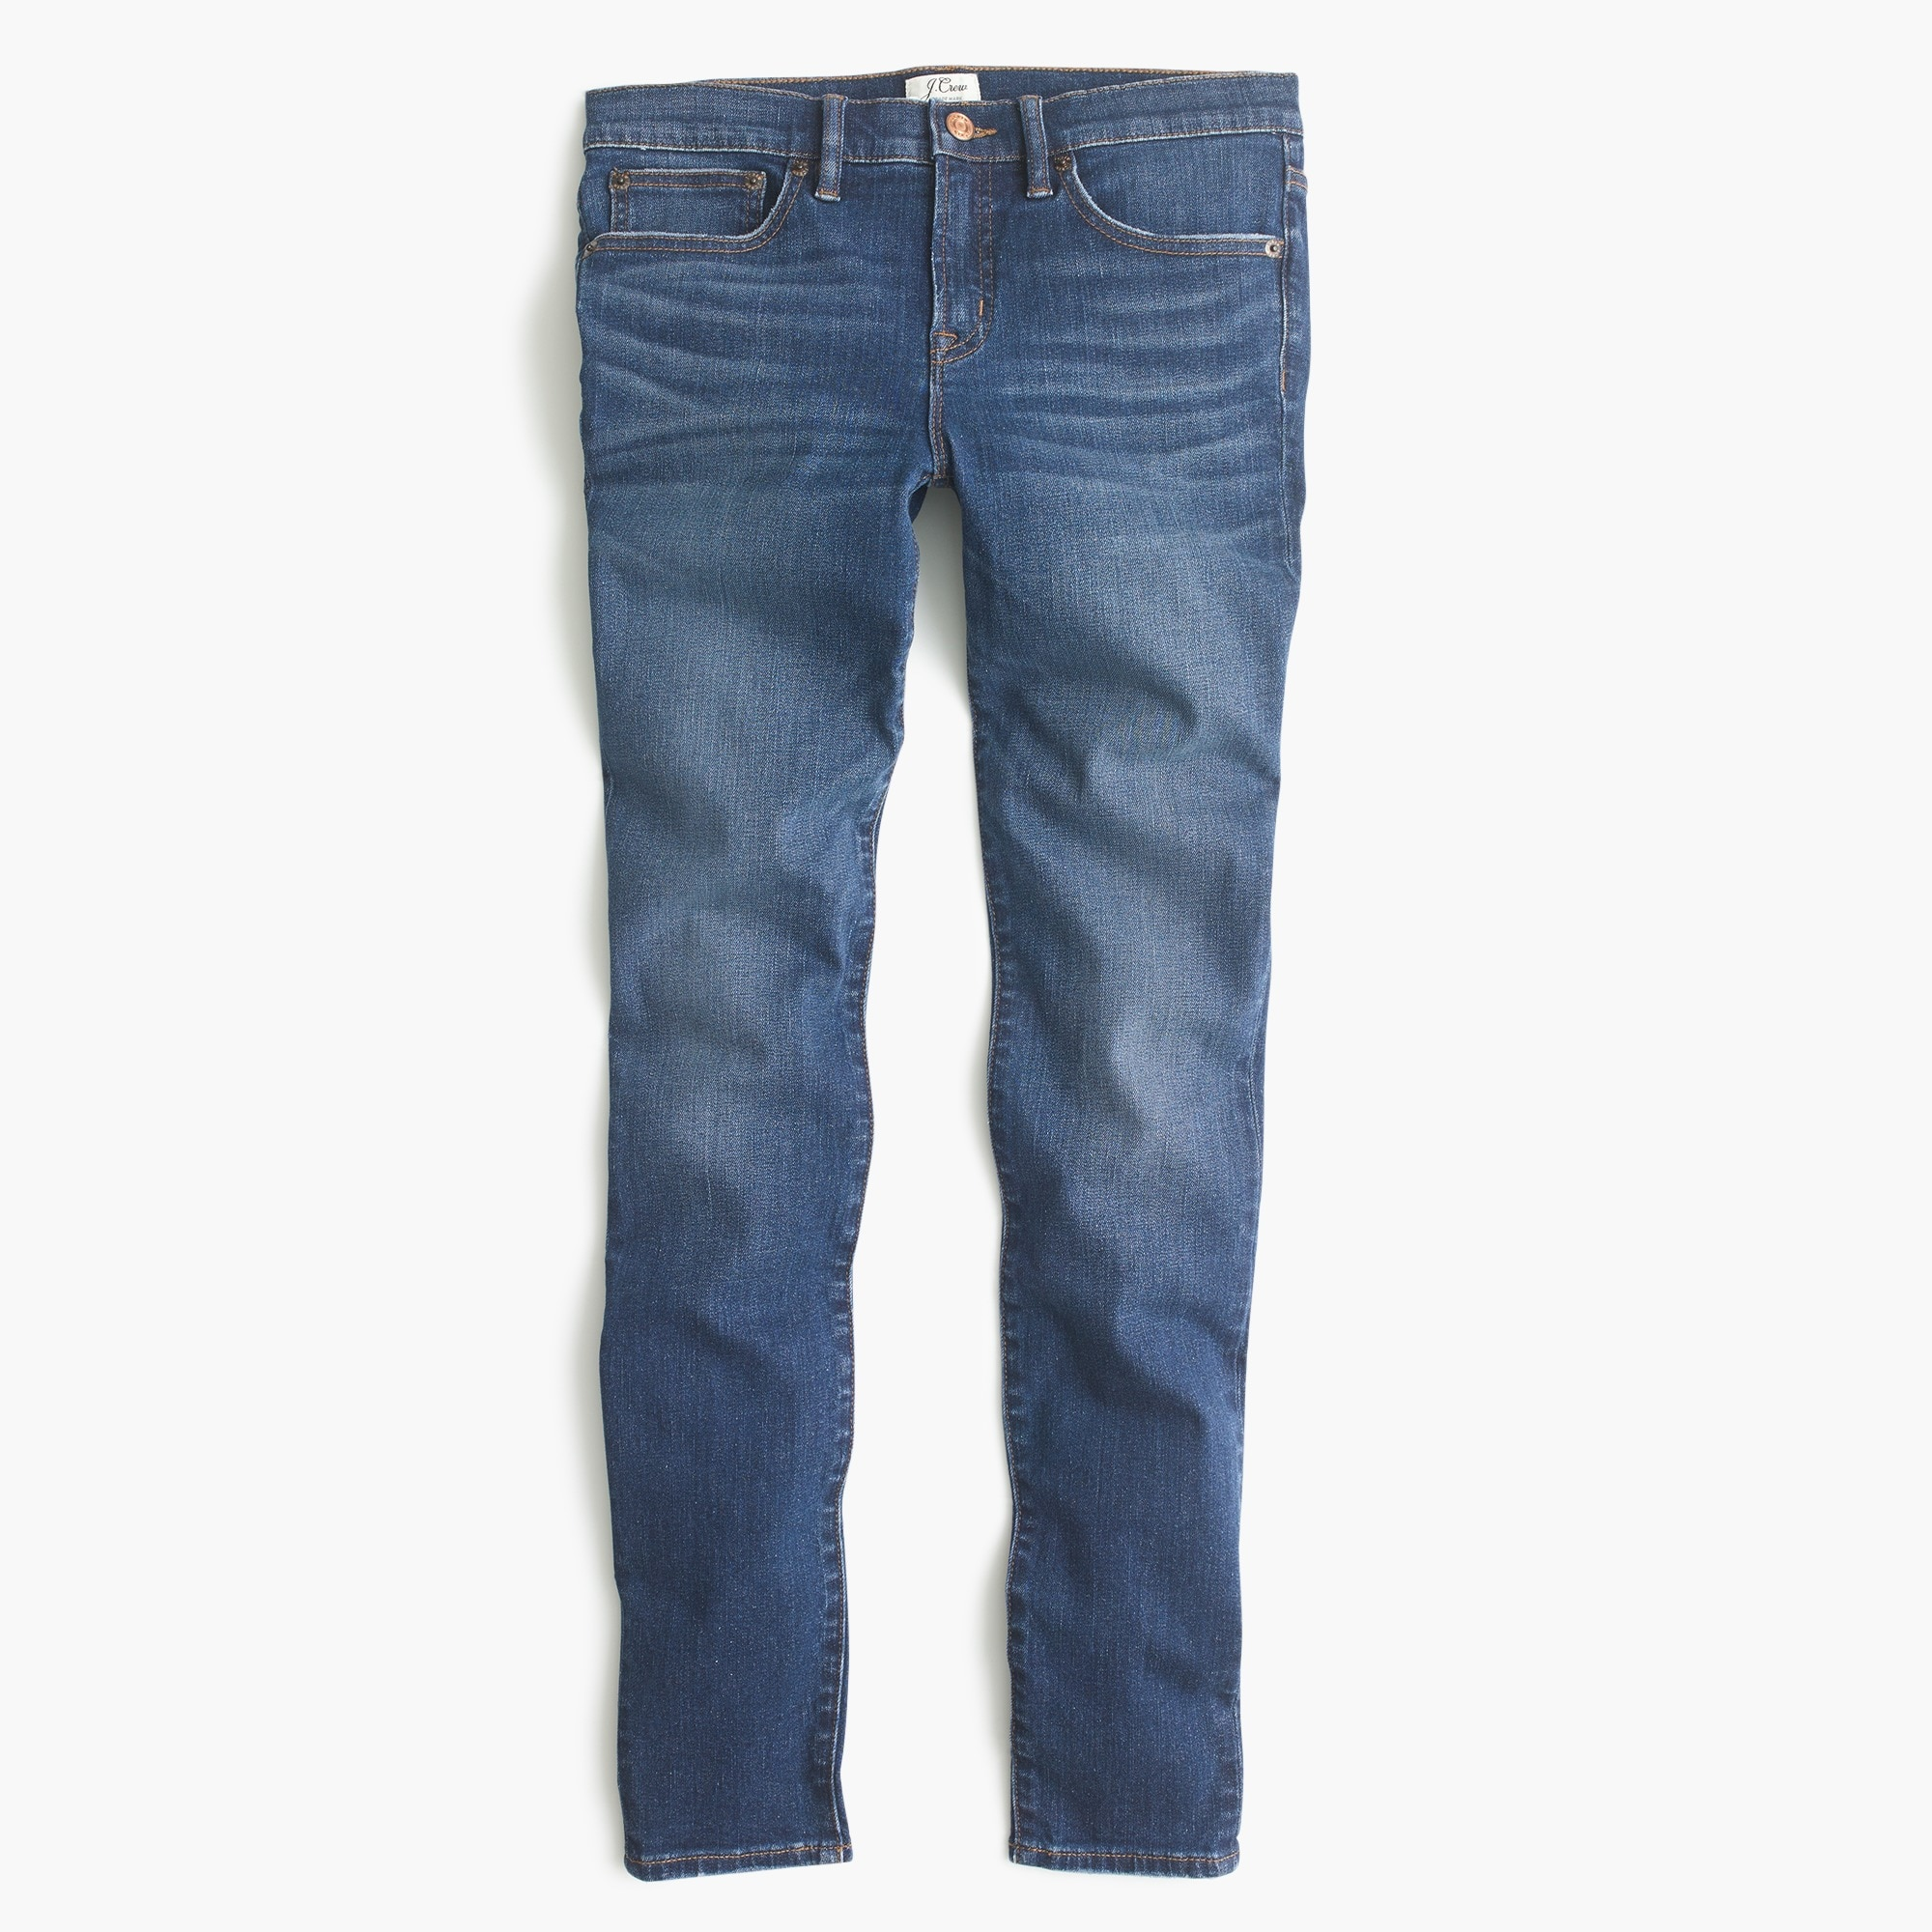 "Petite 8"" toothpick jean in Lyric wash"